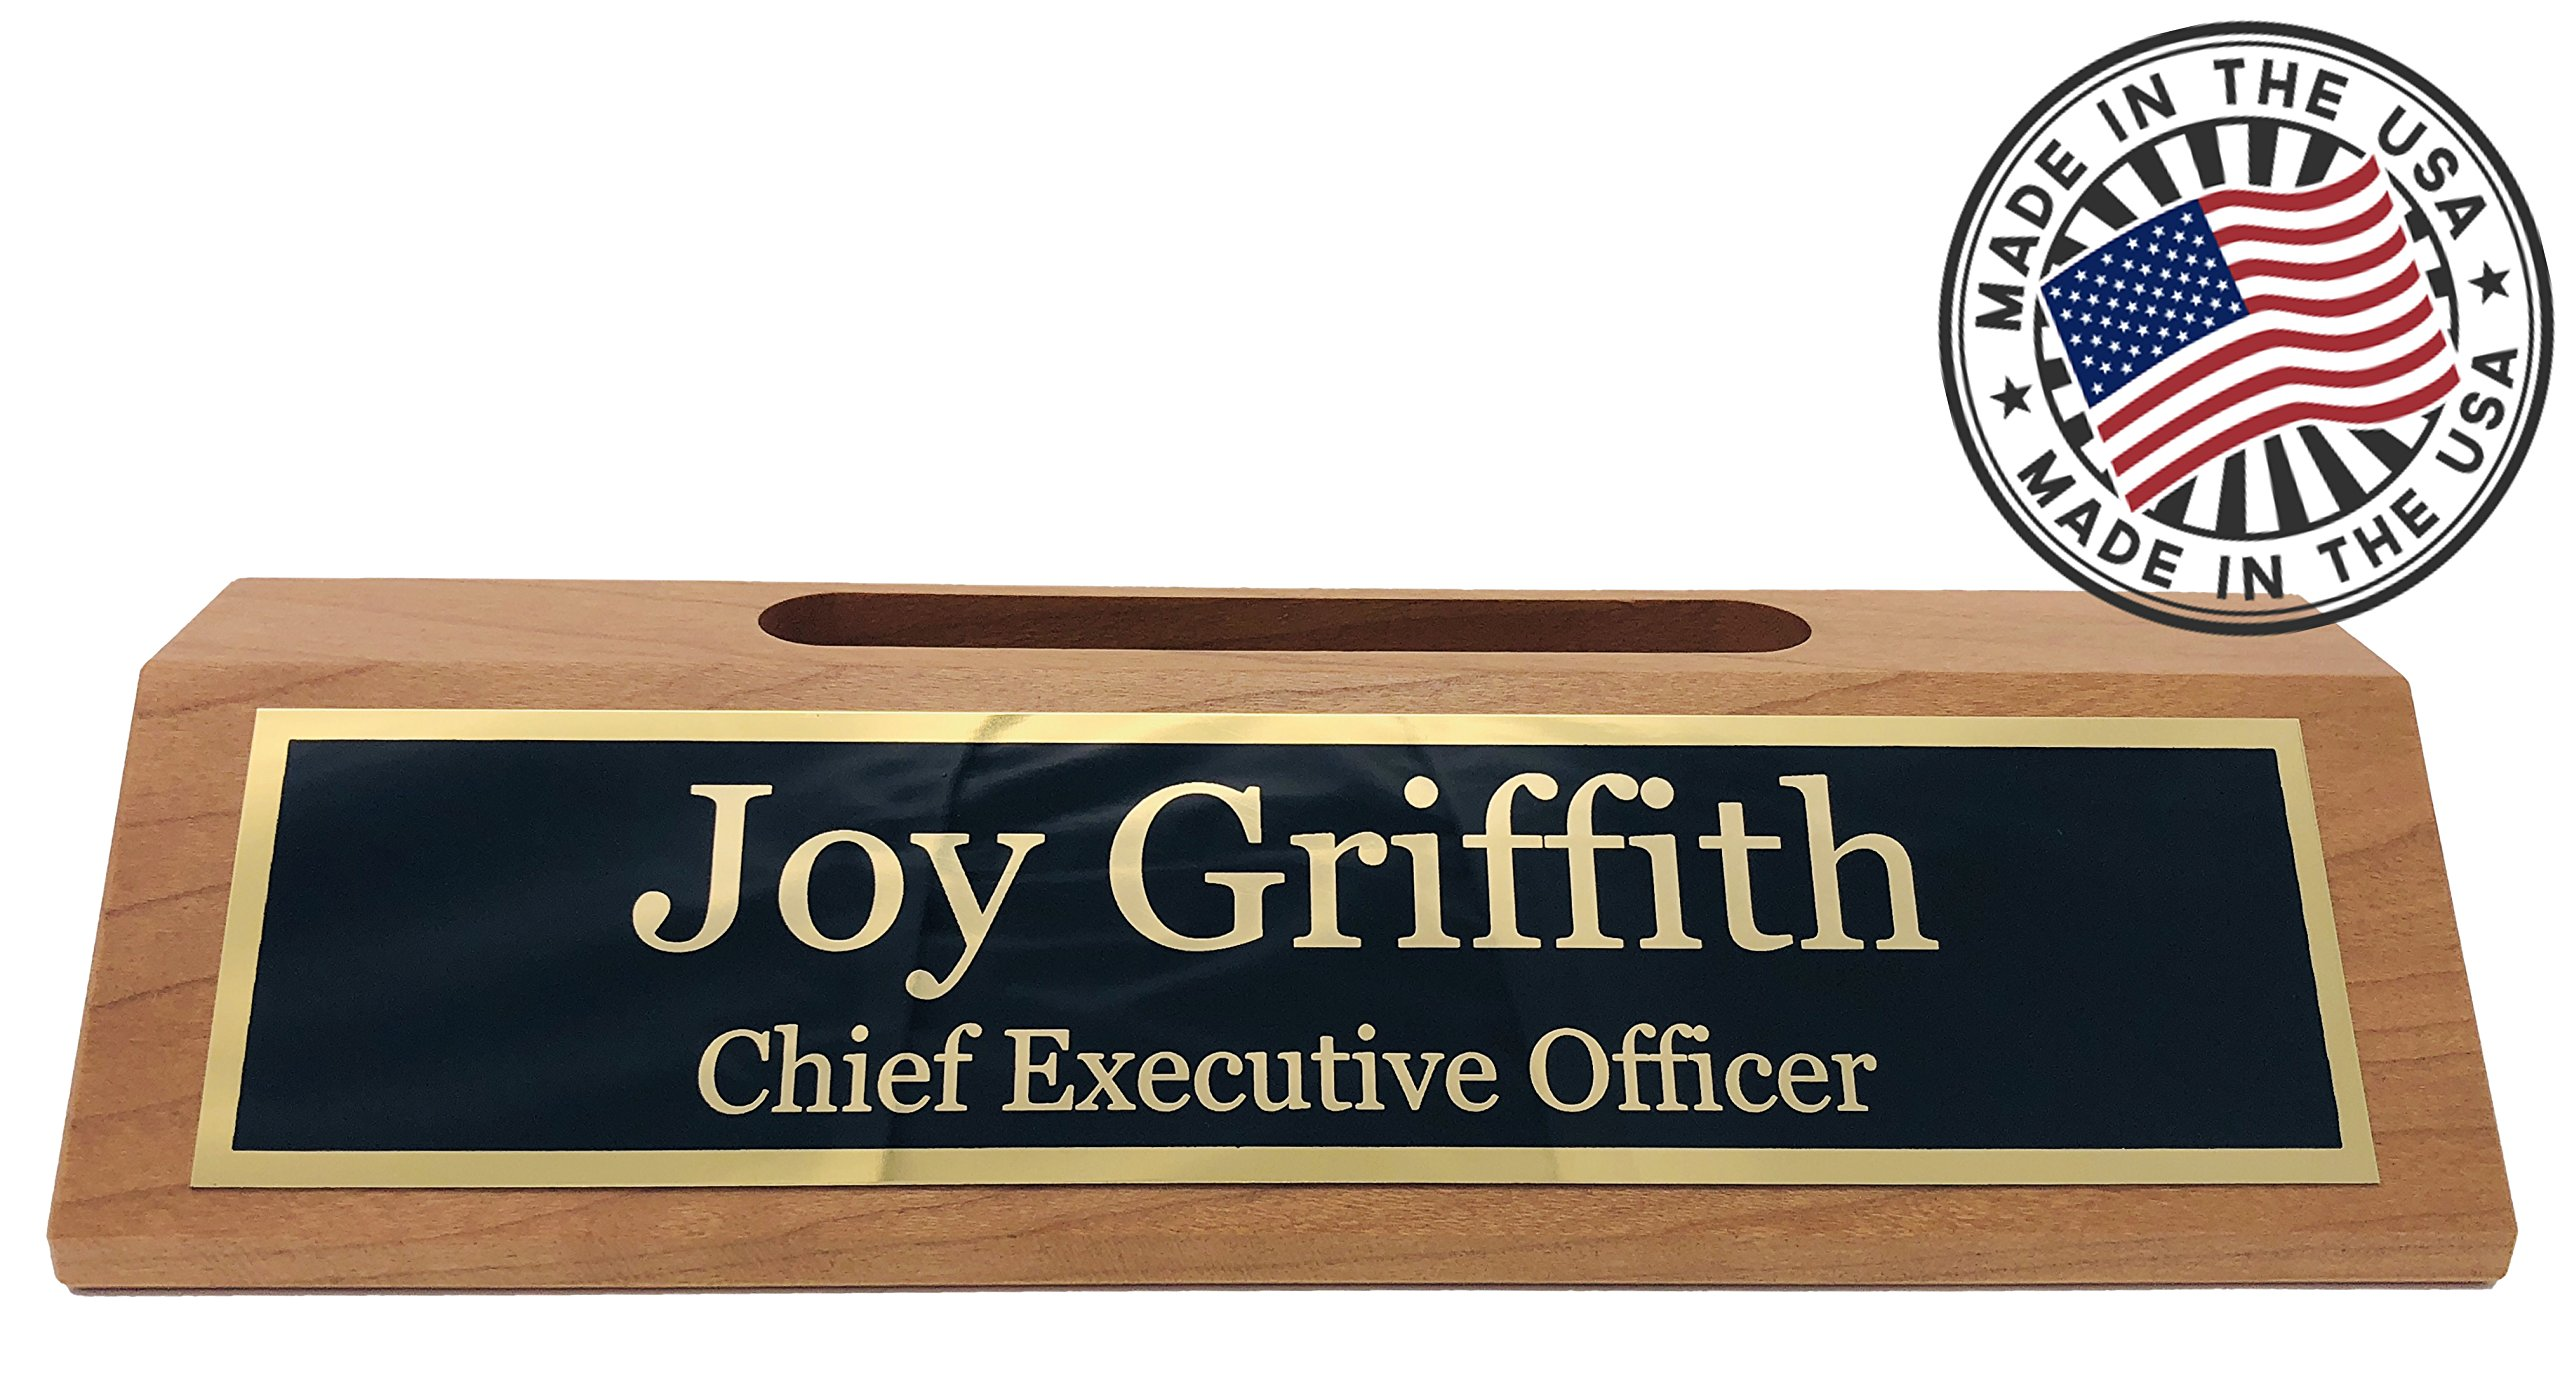 Personalized Business Desk Name Plate with Card Holder - Made in USA (Cherry Wood) by Griffco Supply